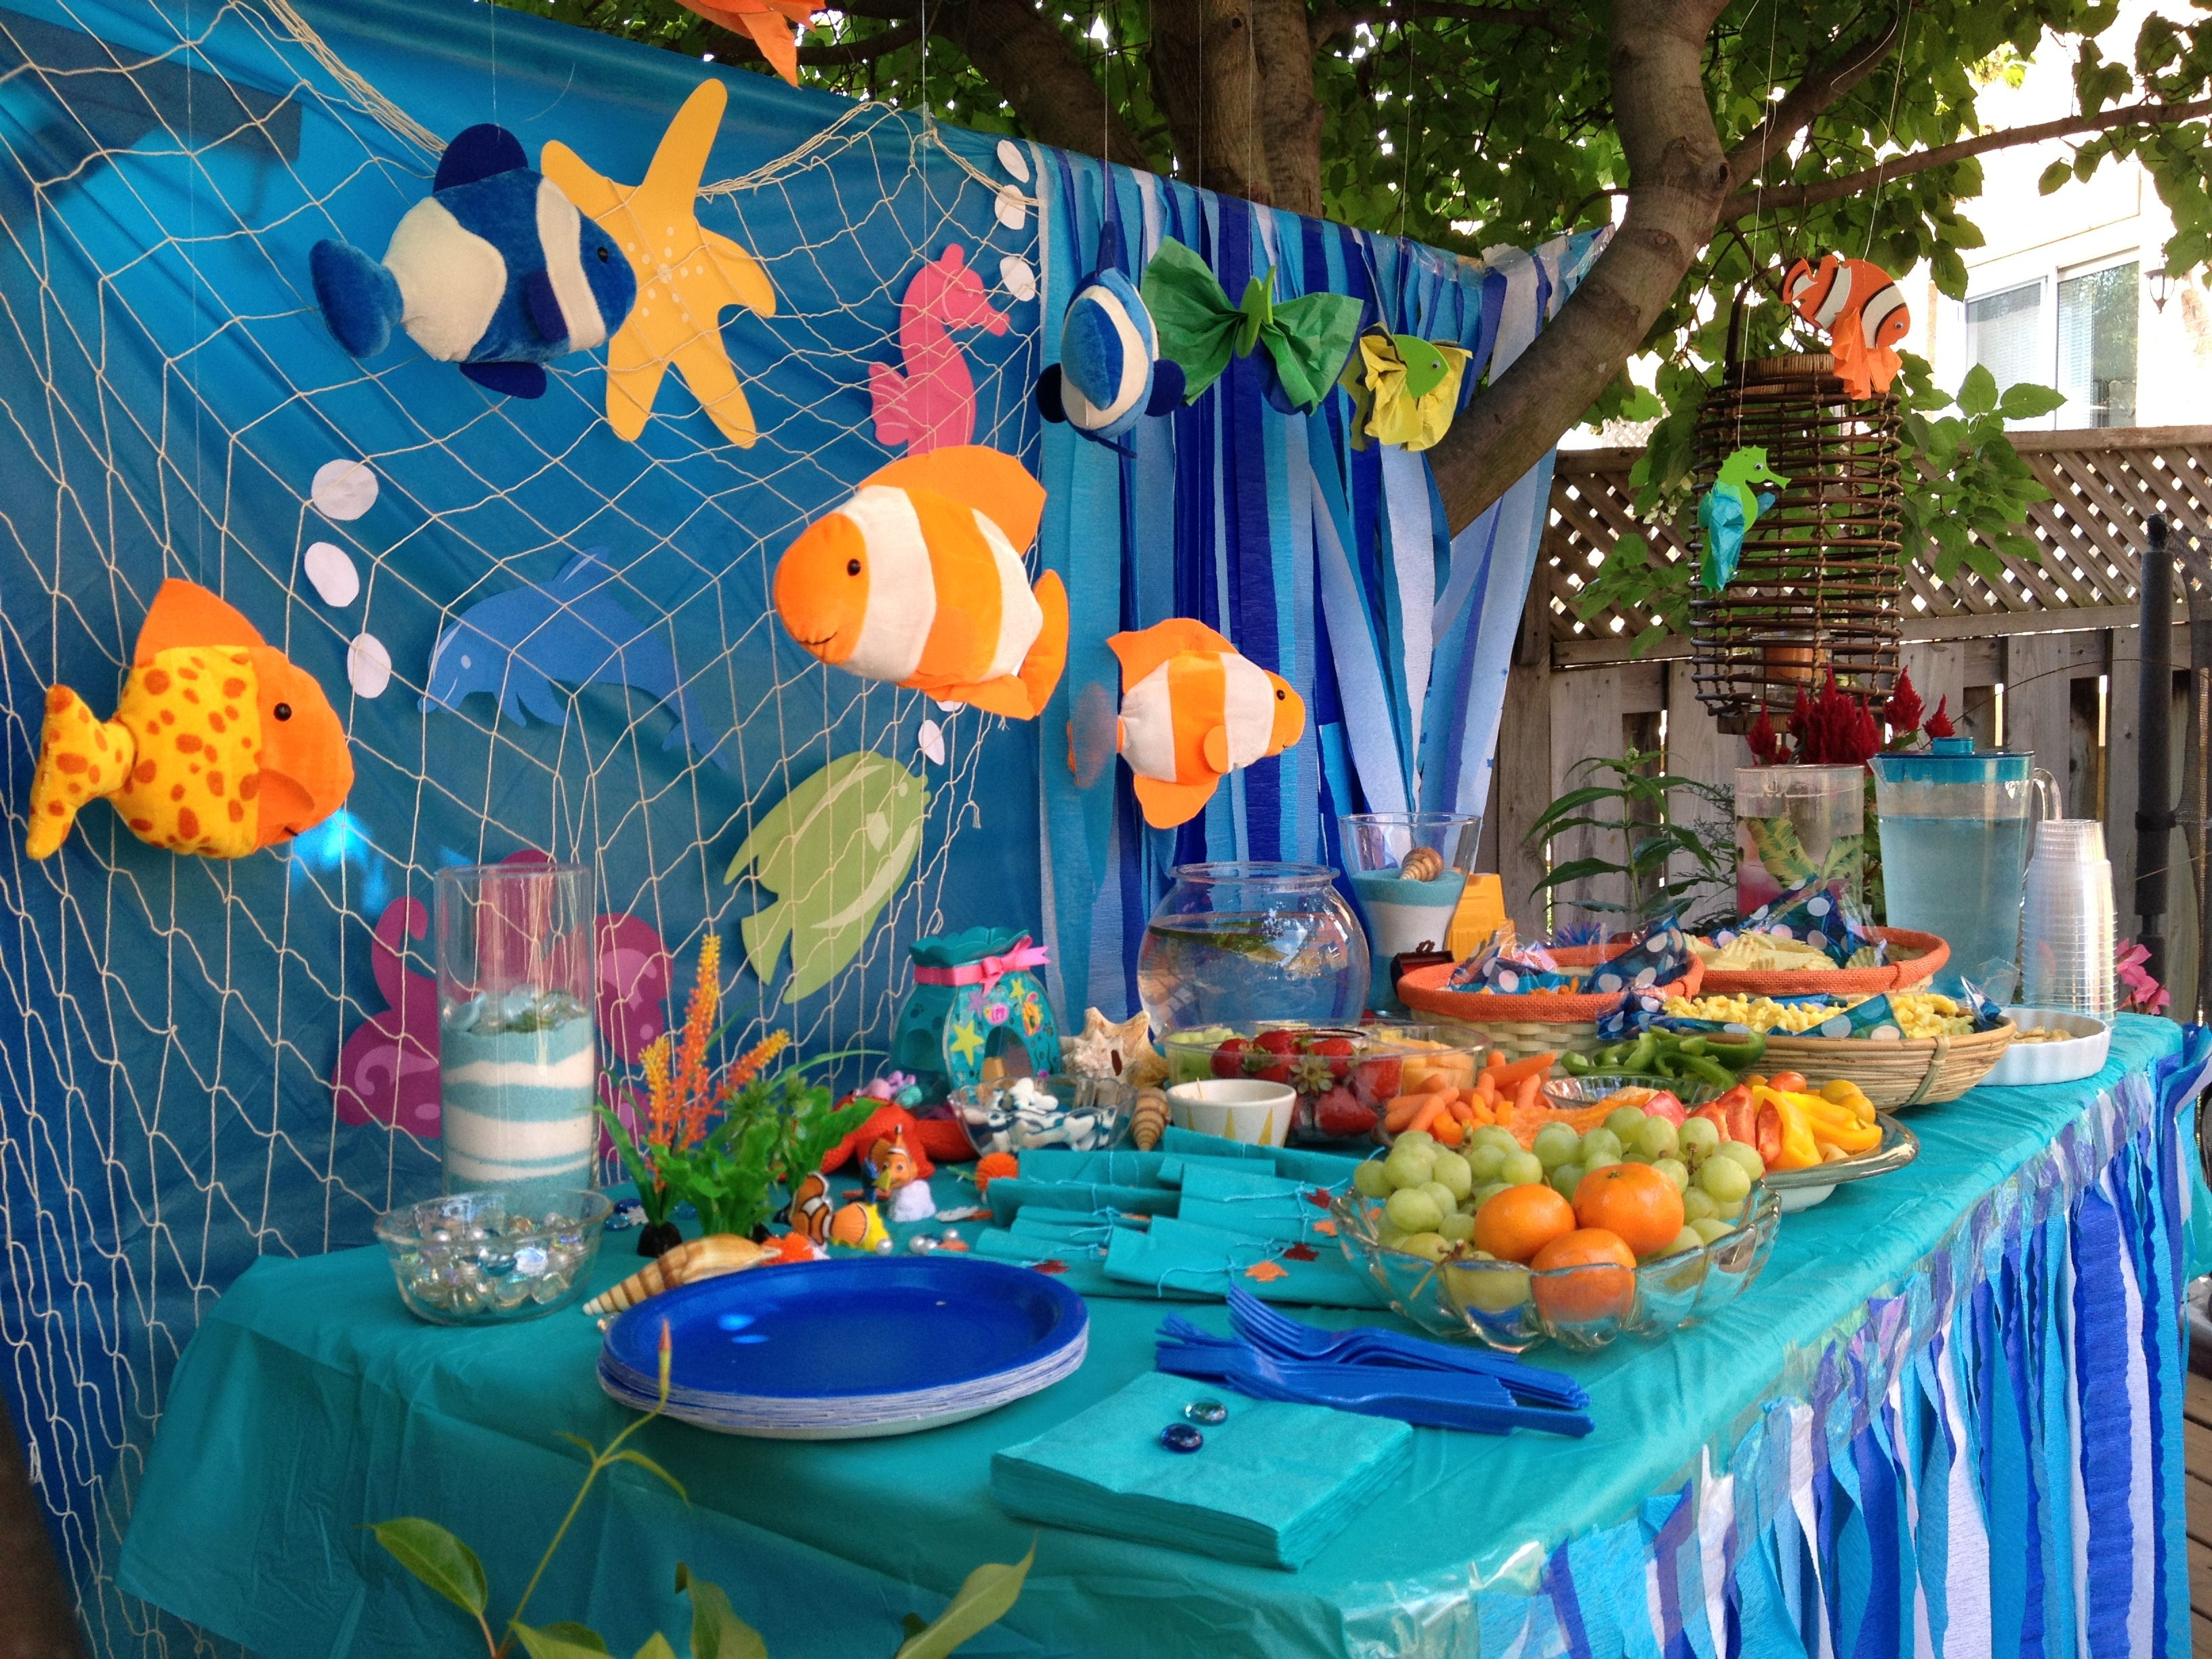 Ocean Theme Decorating Ideas Decor For Under The Sea Theme Featuring Items Doug At The